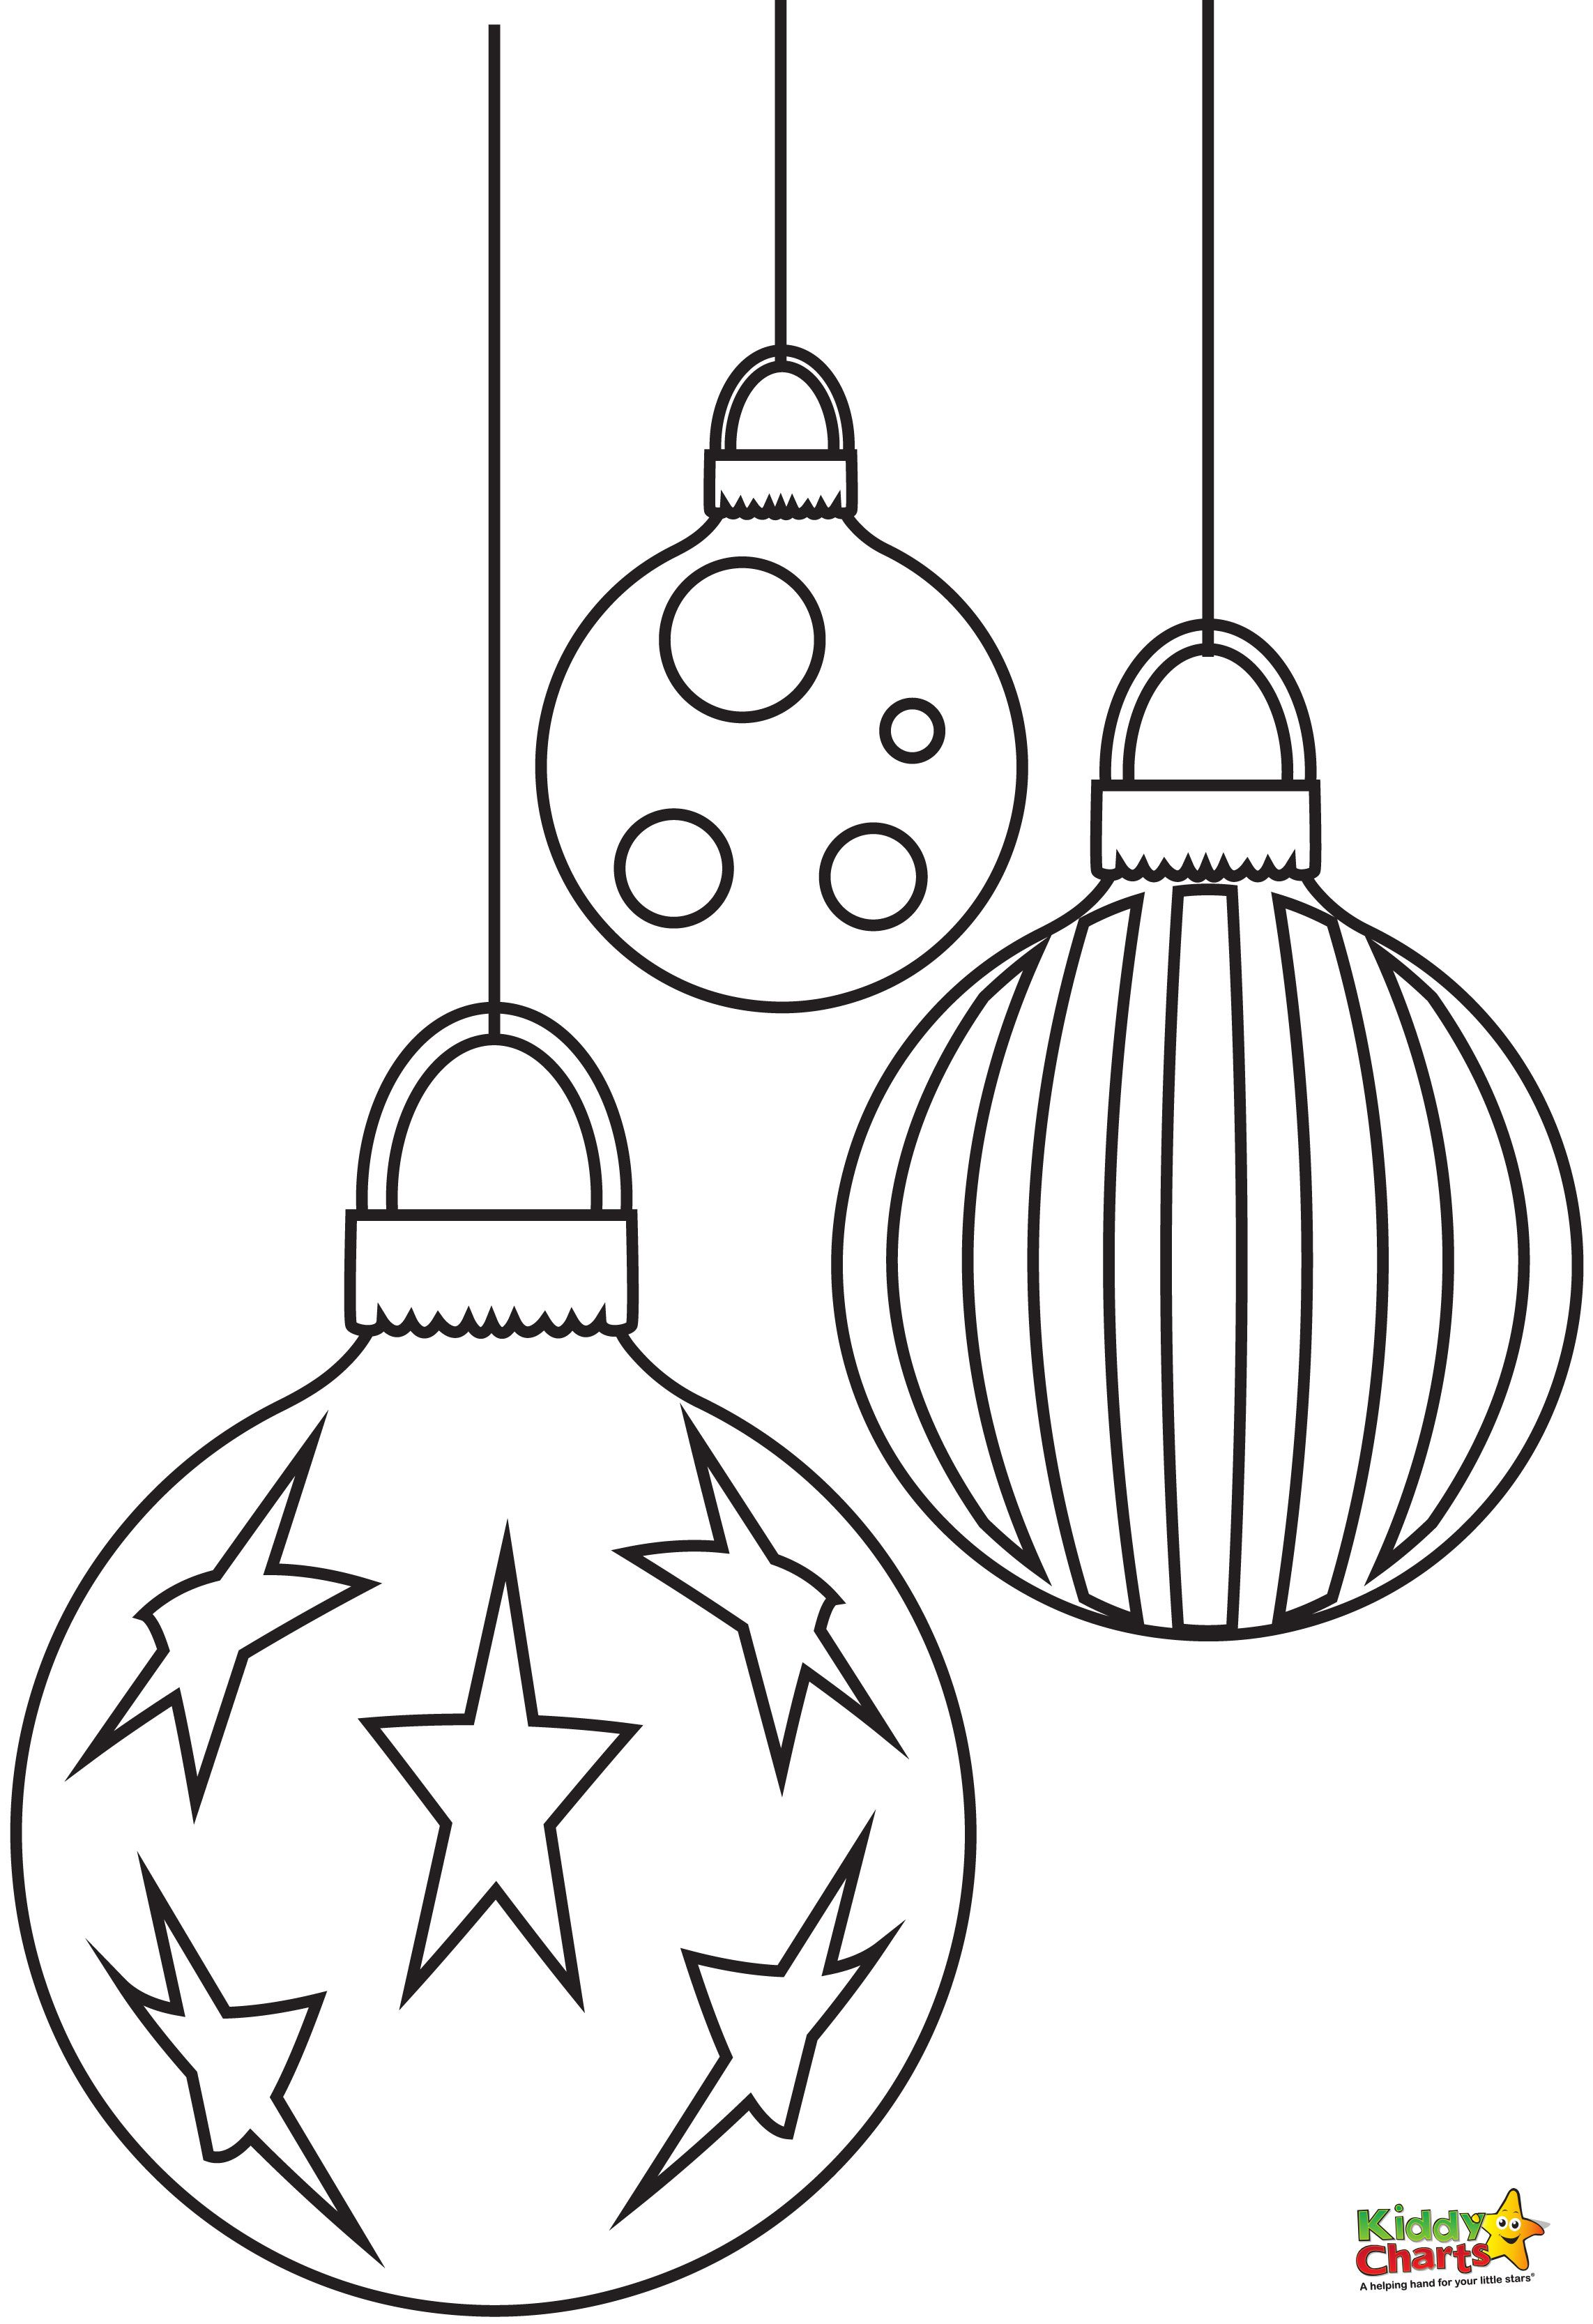 Christmas Coloring Pages Decorations With Baubles Free From Pinterest